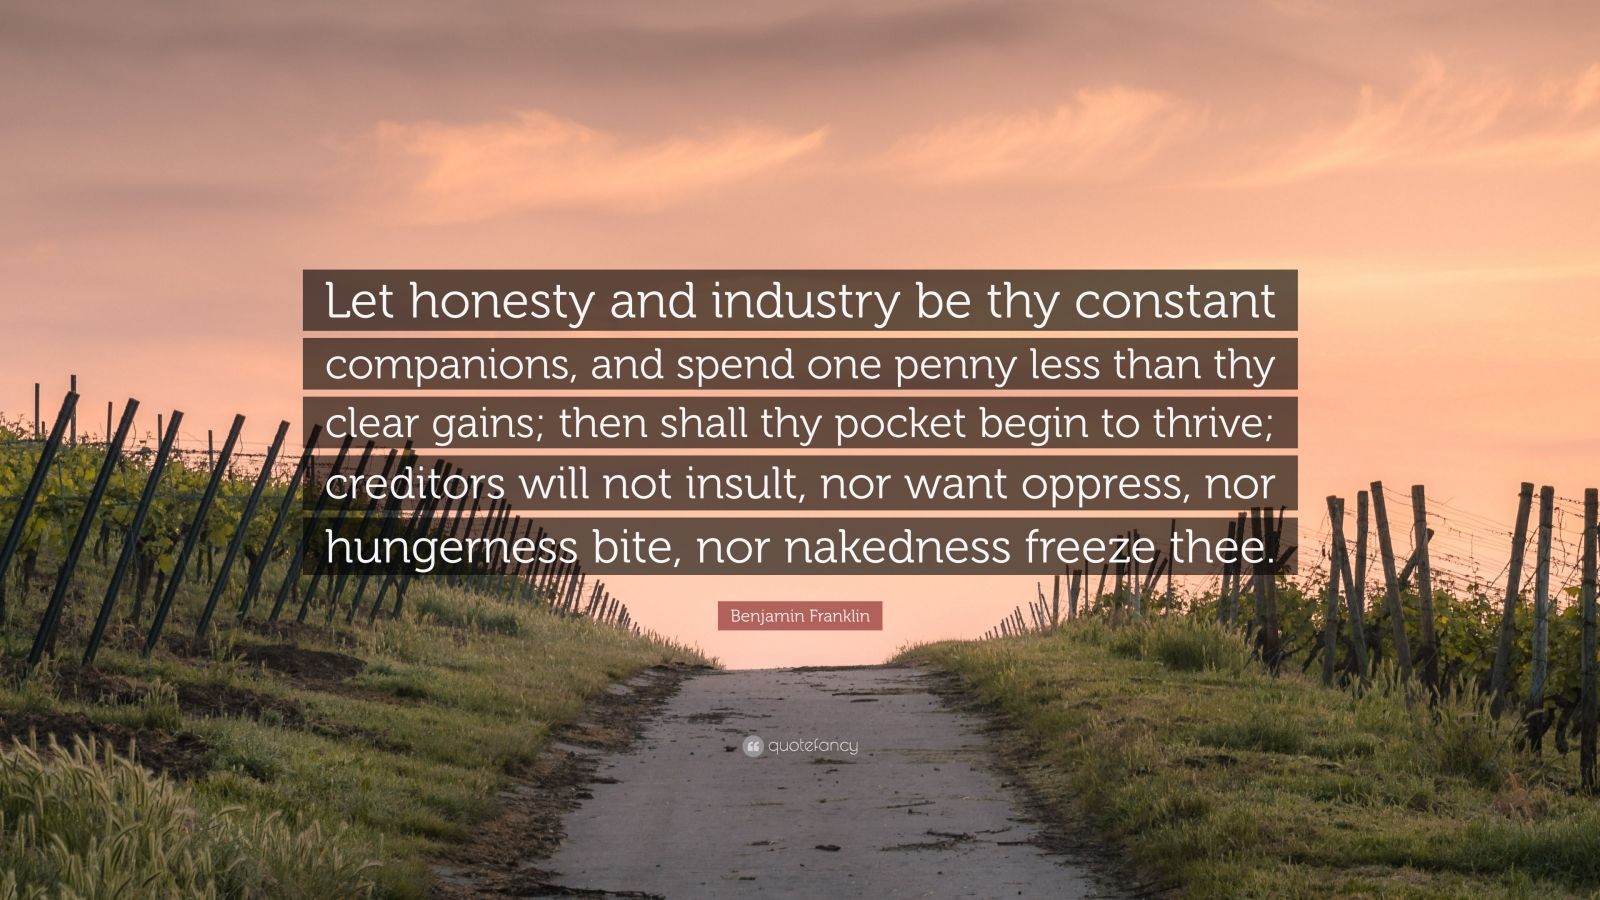 """Benjamin Franklin Quote: """"Let honesty and industry be thy constant companions, and spend one penny less than thy clear gains; then shall thy pocket begin to thrive; creditors will not insult, nor want oppress, nor hungerness bite, nor nakedness freeze thee."""""""